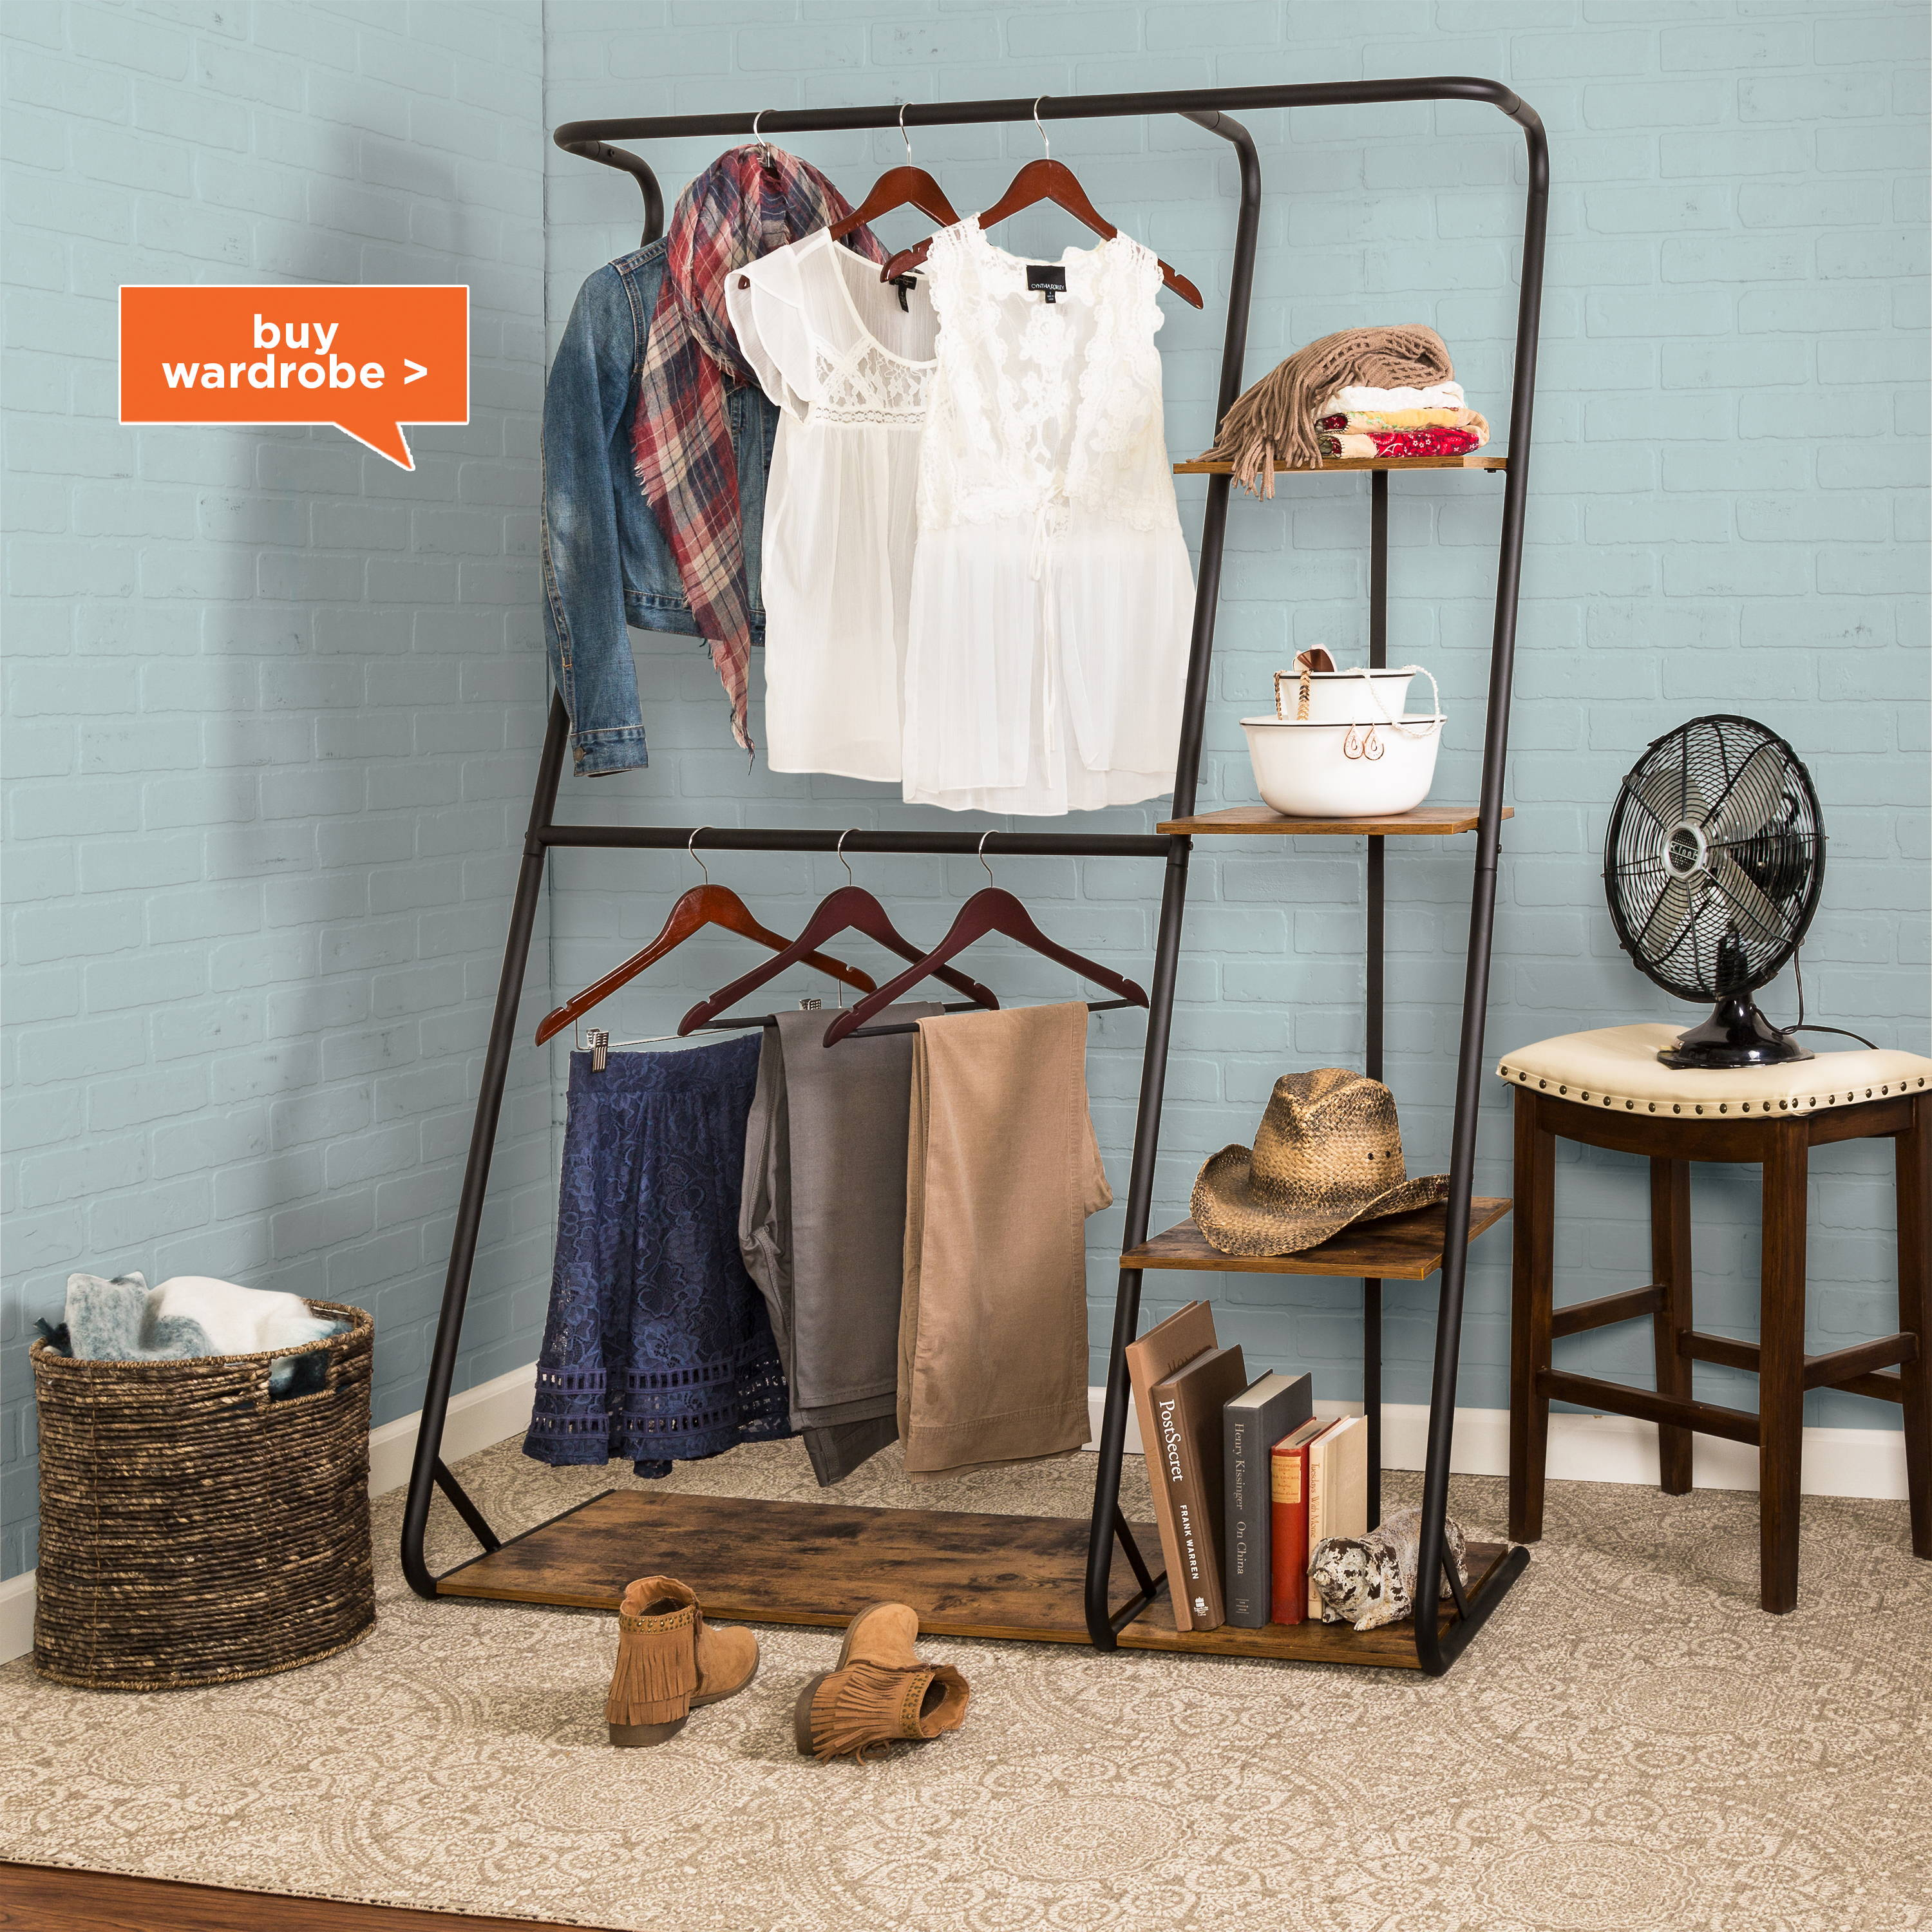 z-frame wardrobe with shoe rack and shelves